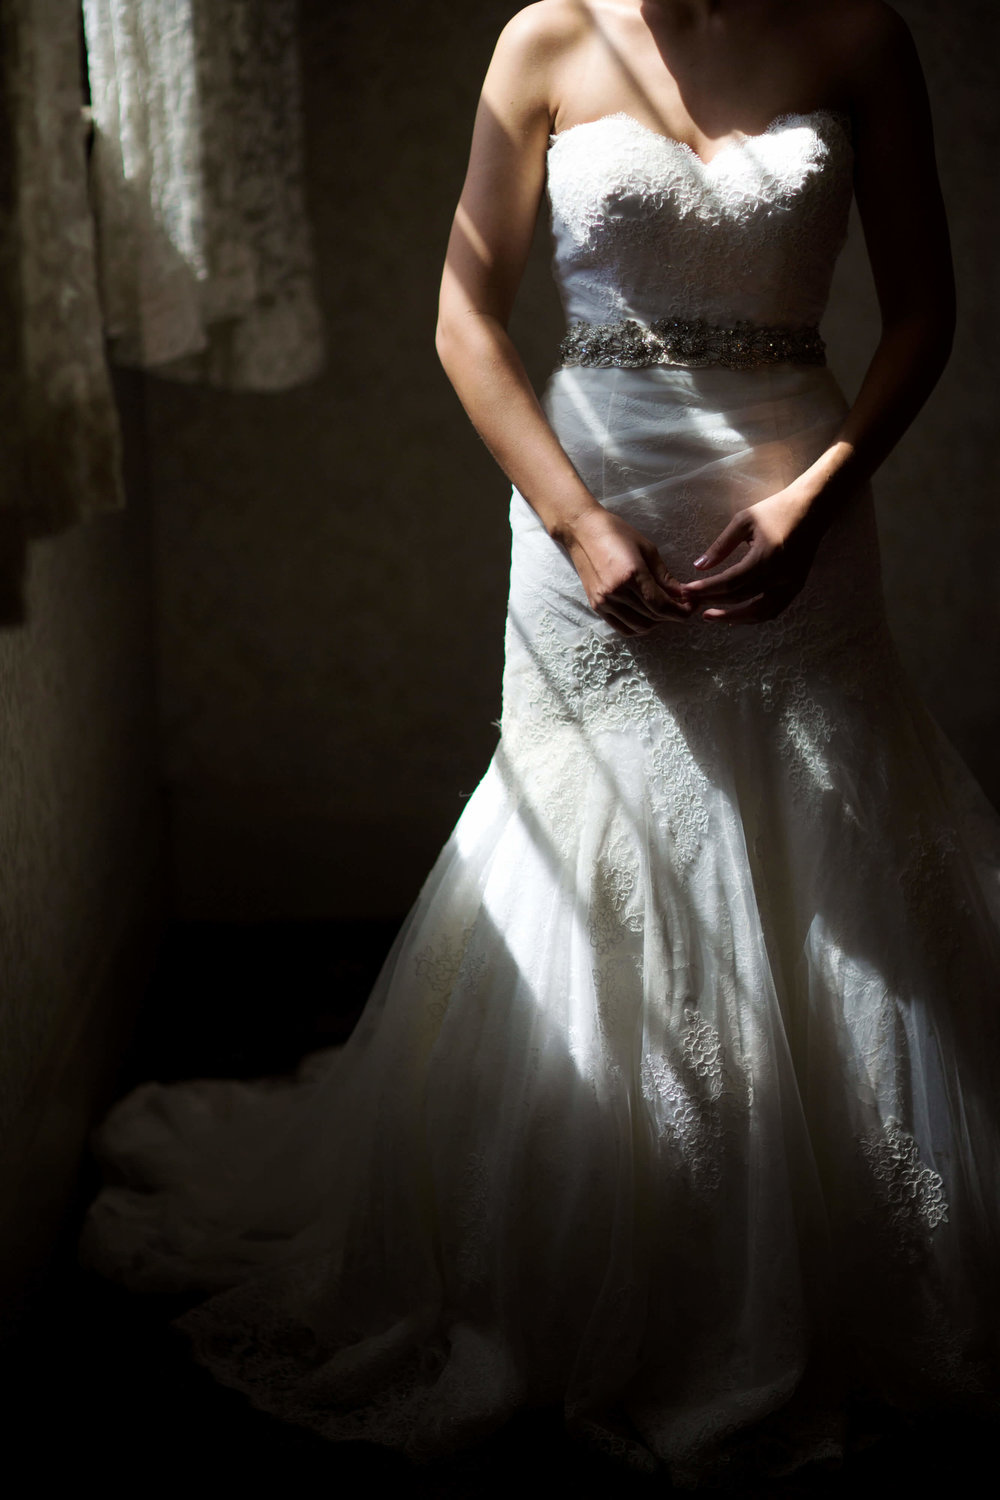 bride standing in the window light | Minnesota wedding photographer Studio KH wedding dress details | wedding blog | Sixpence Events 70 Ways to Photograph Your Wedding Dress.jpg